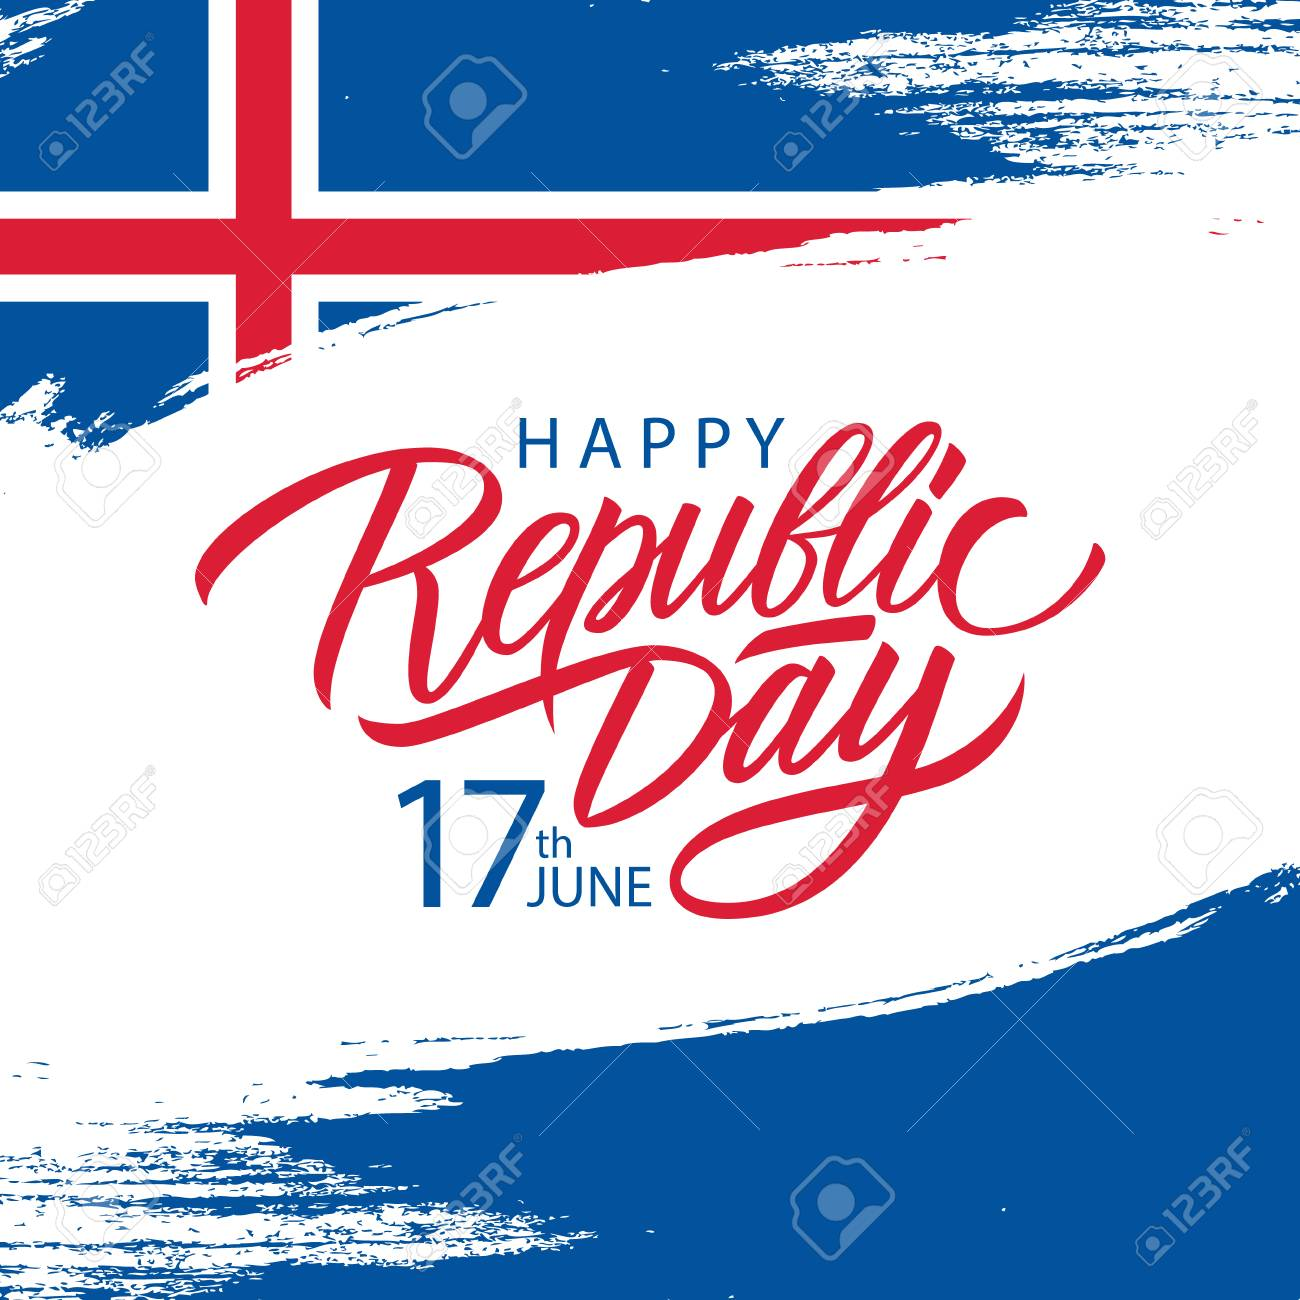 Icelandic Republic Day, 17th june greeting card with brush stroke background in colors of the national flag of Iceland and handwritten inscription Republic Day. Vector illustration. - 122405891